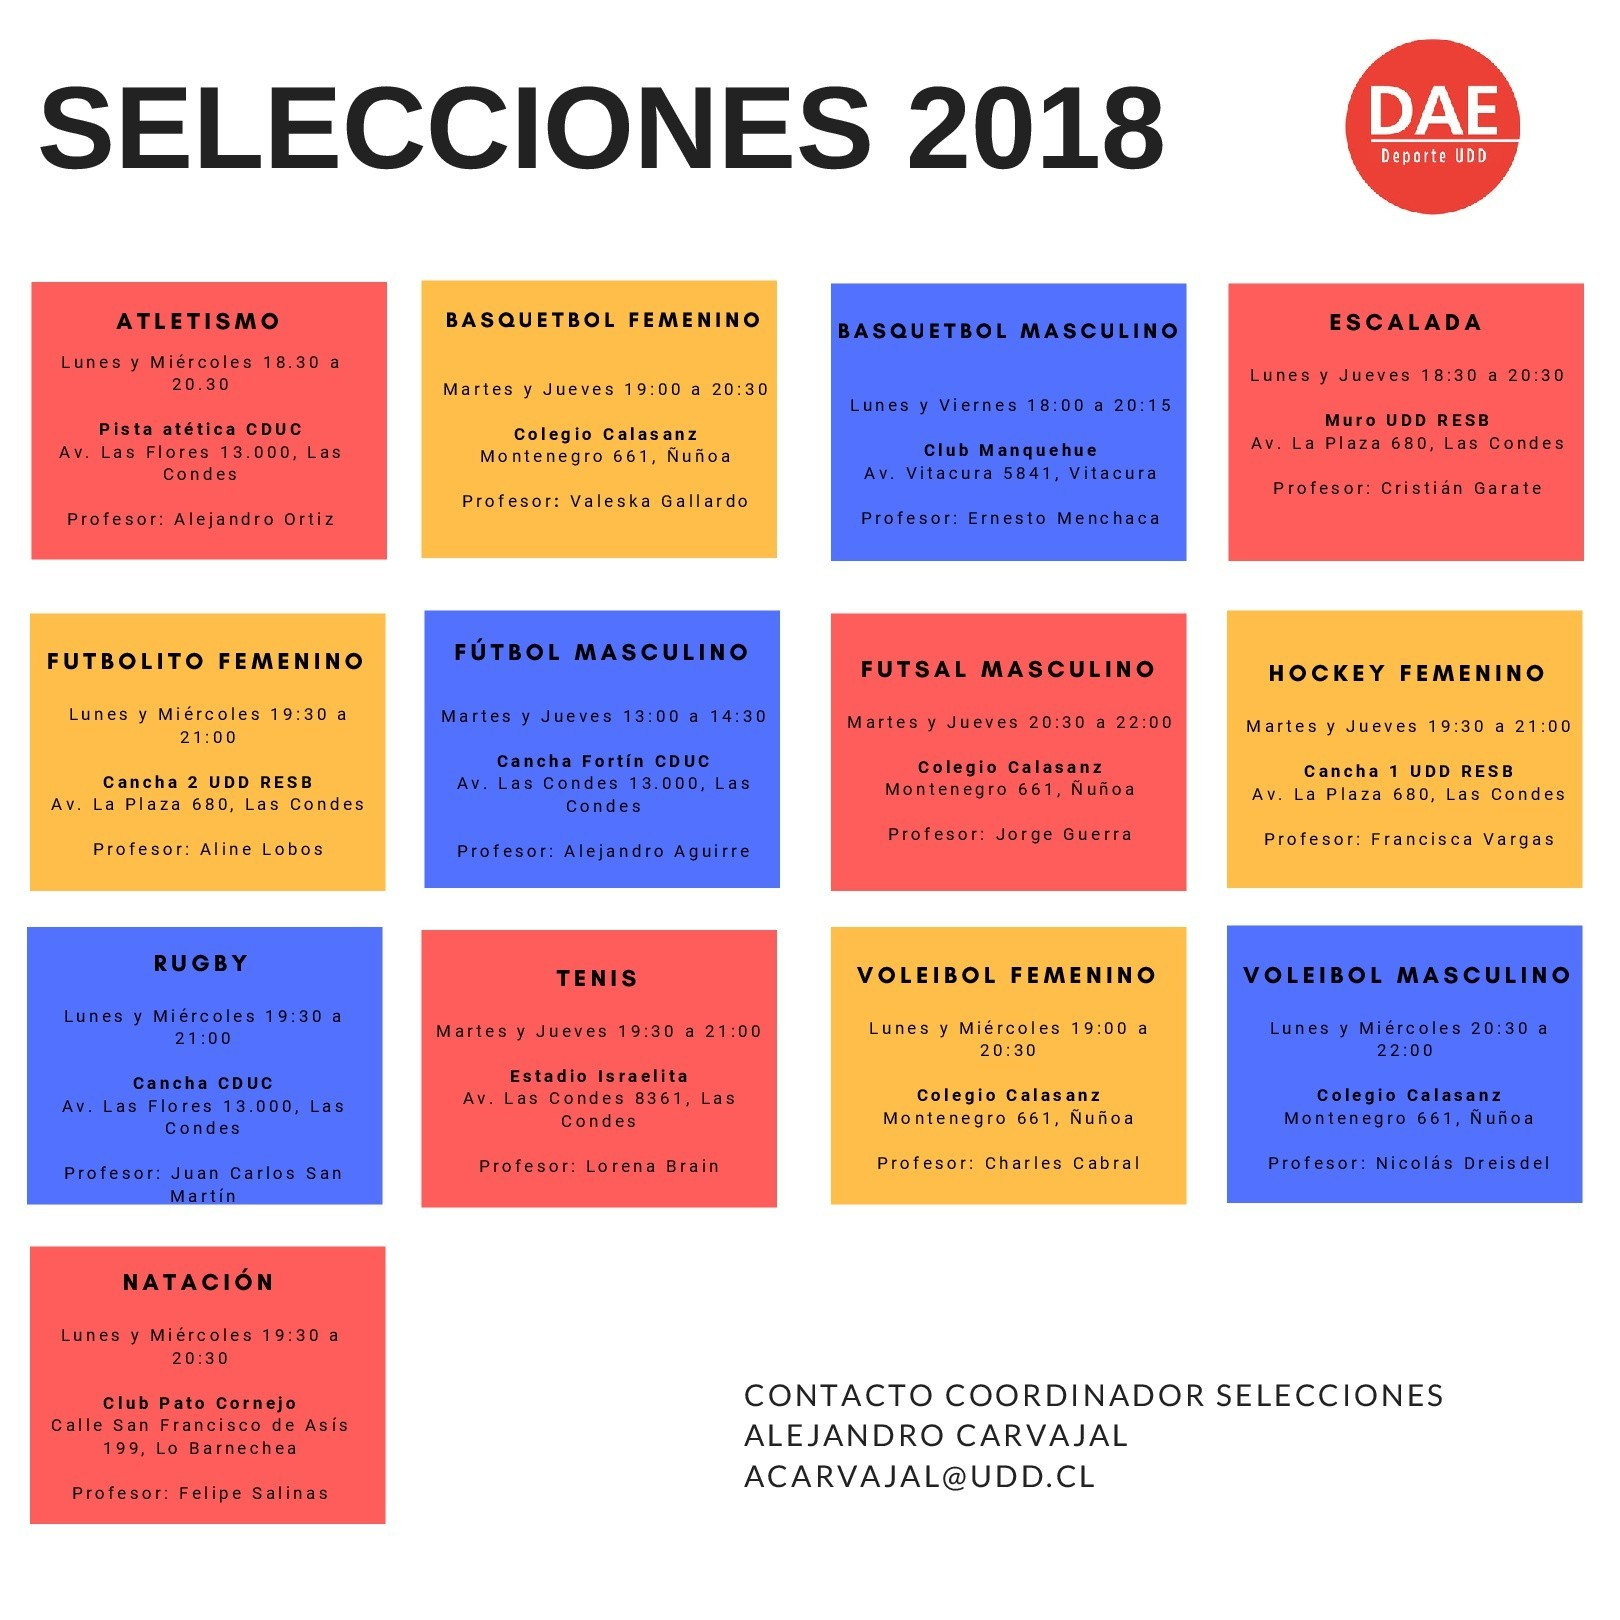 Calendario Escolar 2019 Madrid Para Imprimir Más Actual Verificar Calendario Escolar 2019 Y 2019 Para Imprimir Of Calendario Escolar 2019 Madrid Para Imprimir Más Actual Verificar Calendario Escolar 2019 Y 2019 Para Imprimir